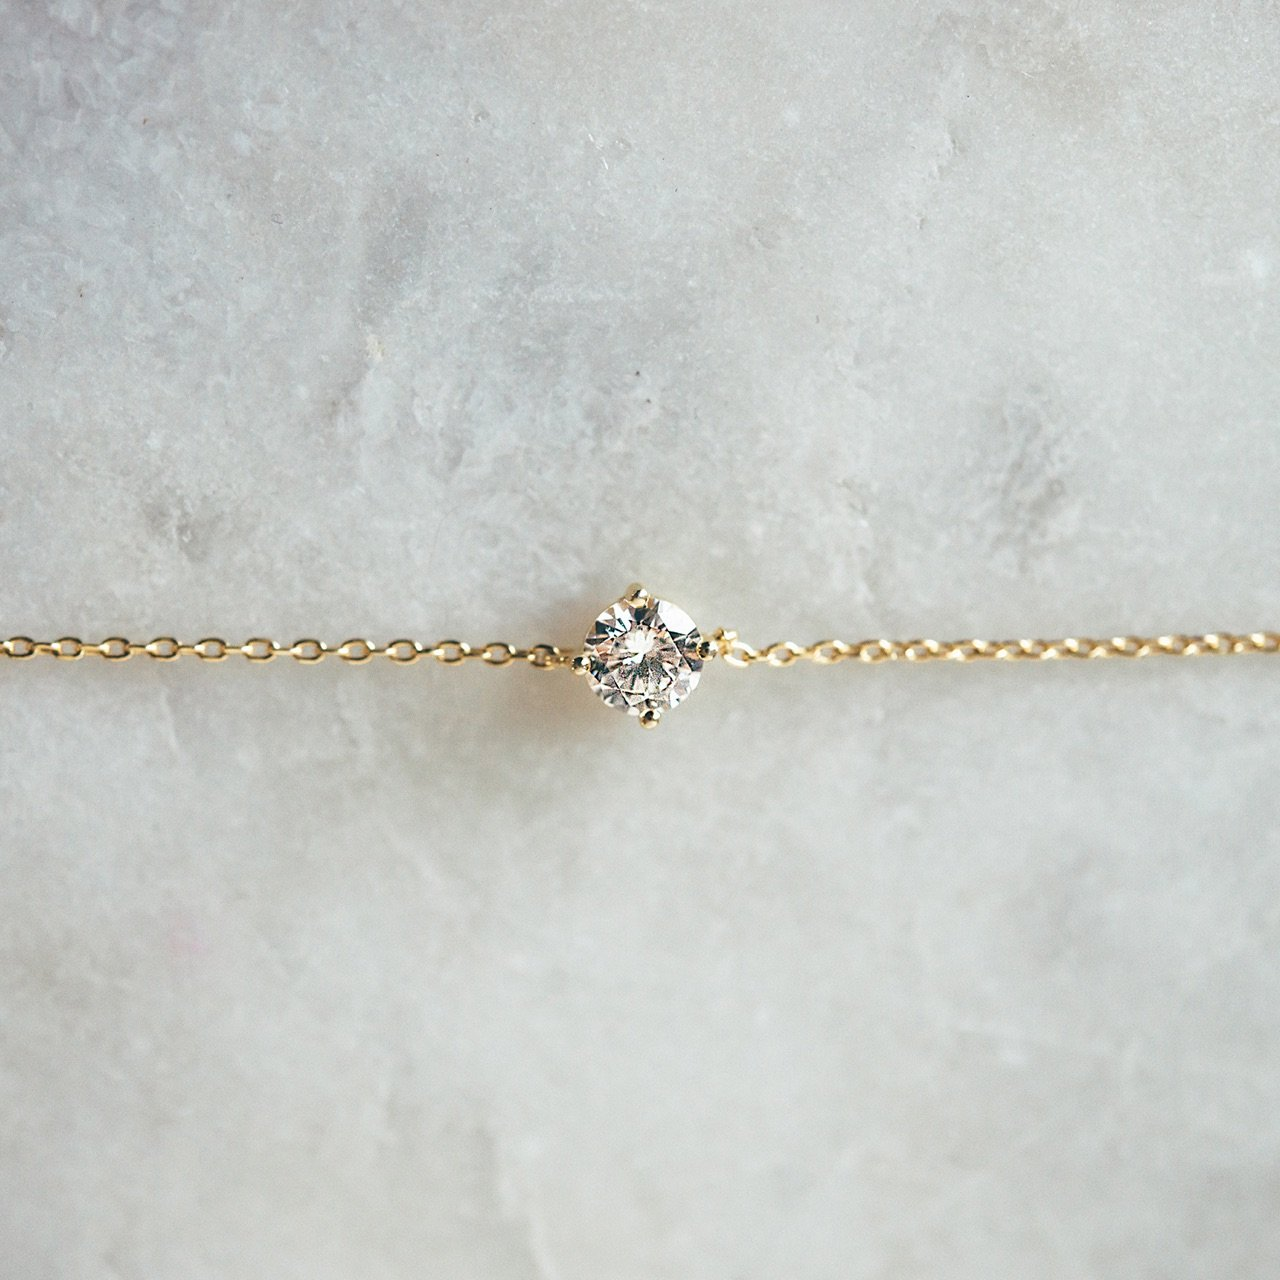 PAVOI 14K Gold Plated Simulated Solitaire Diamond Bracelet - Yellow by PAVOI (Image #6)